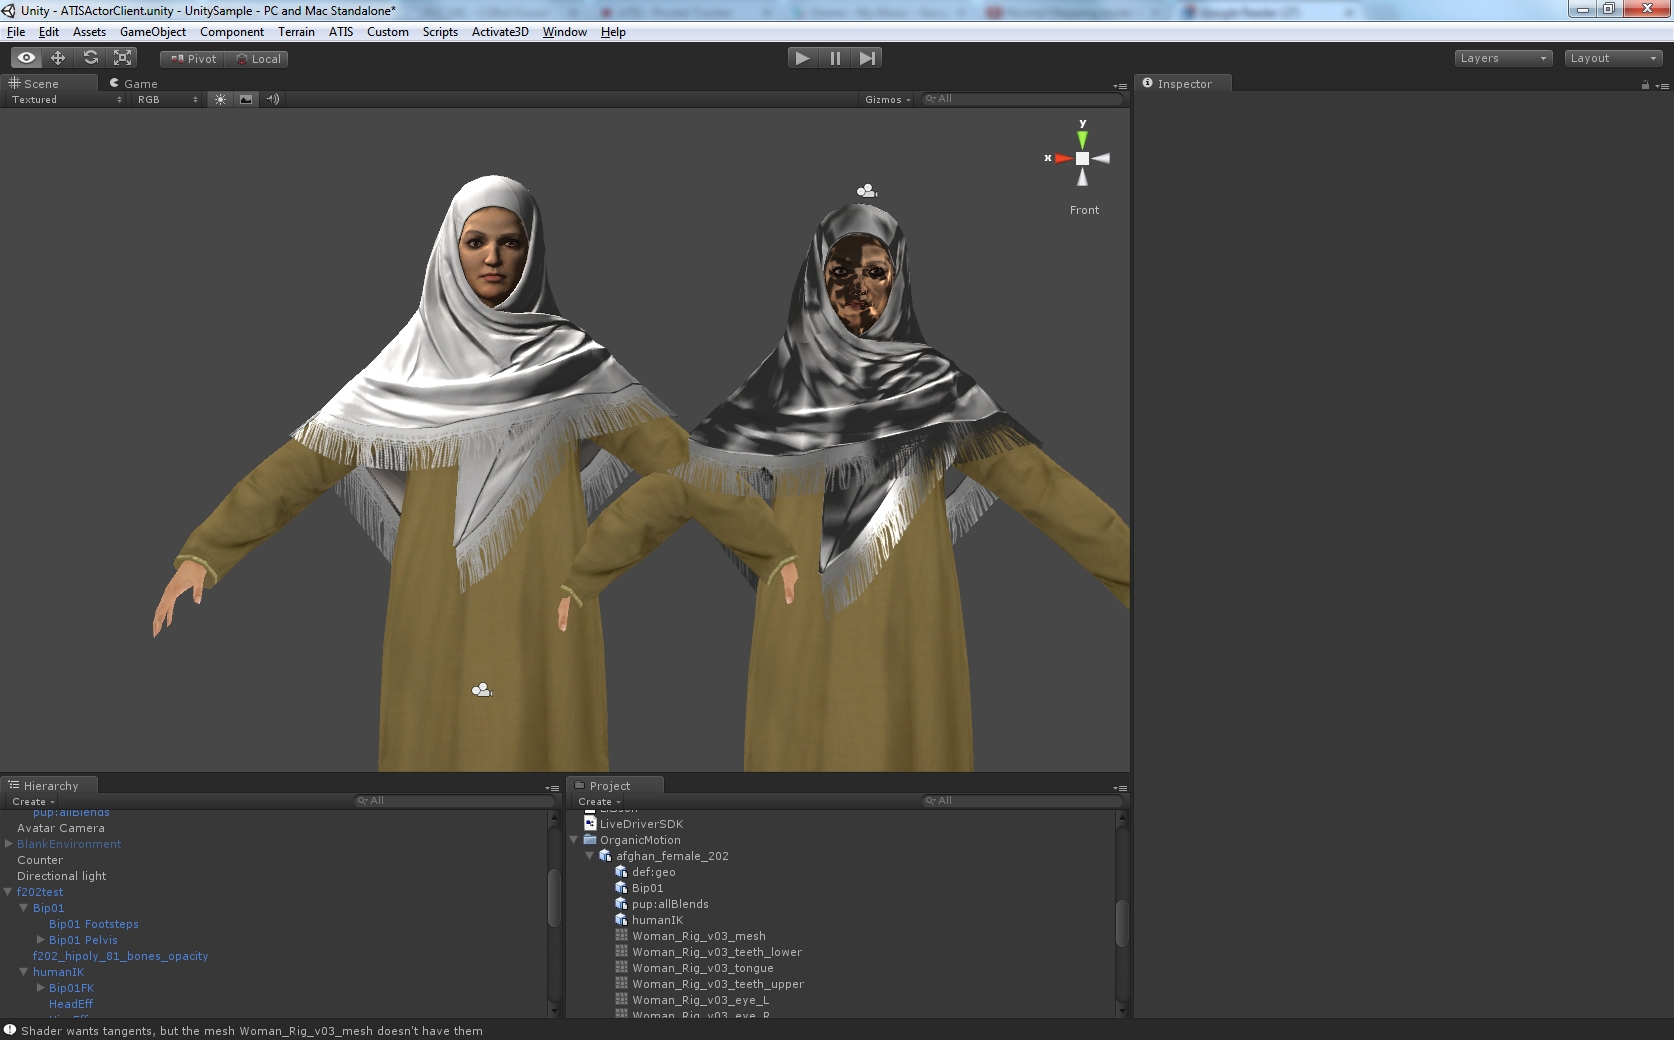 Imported Maya FBX to Unity, Normals All Wrong - Unity Answers